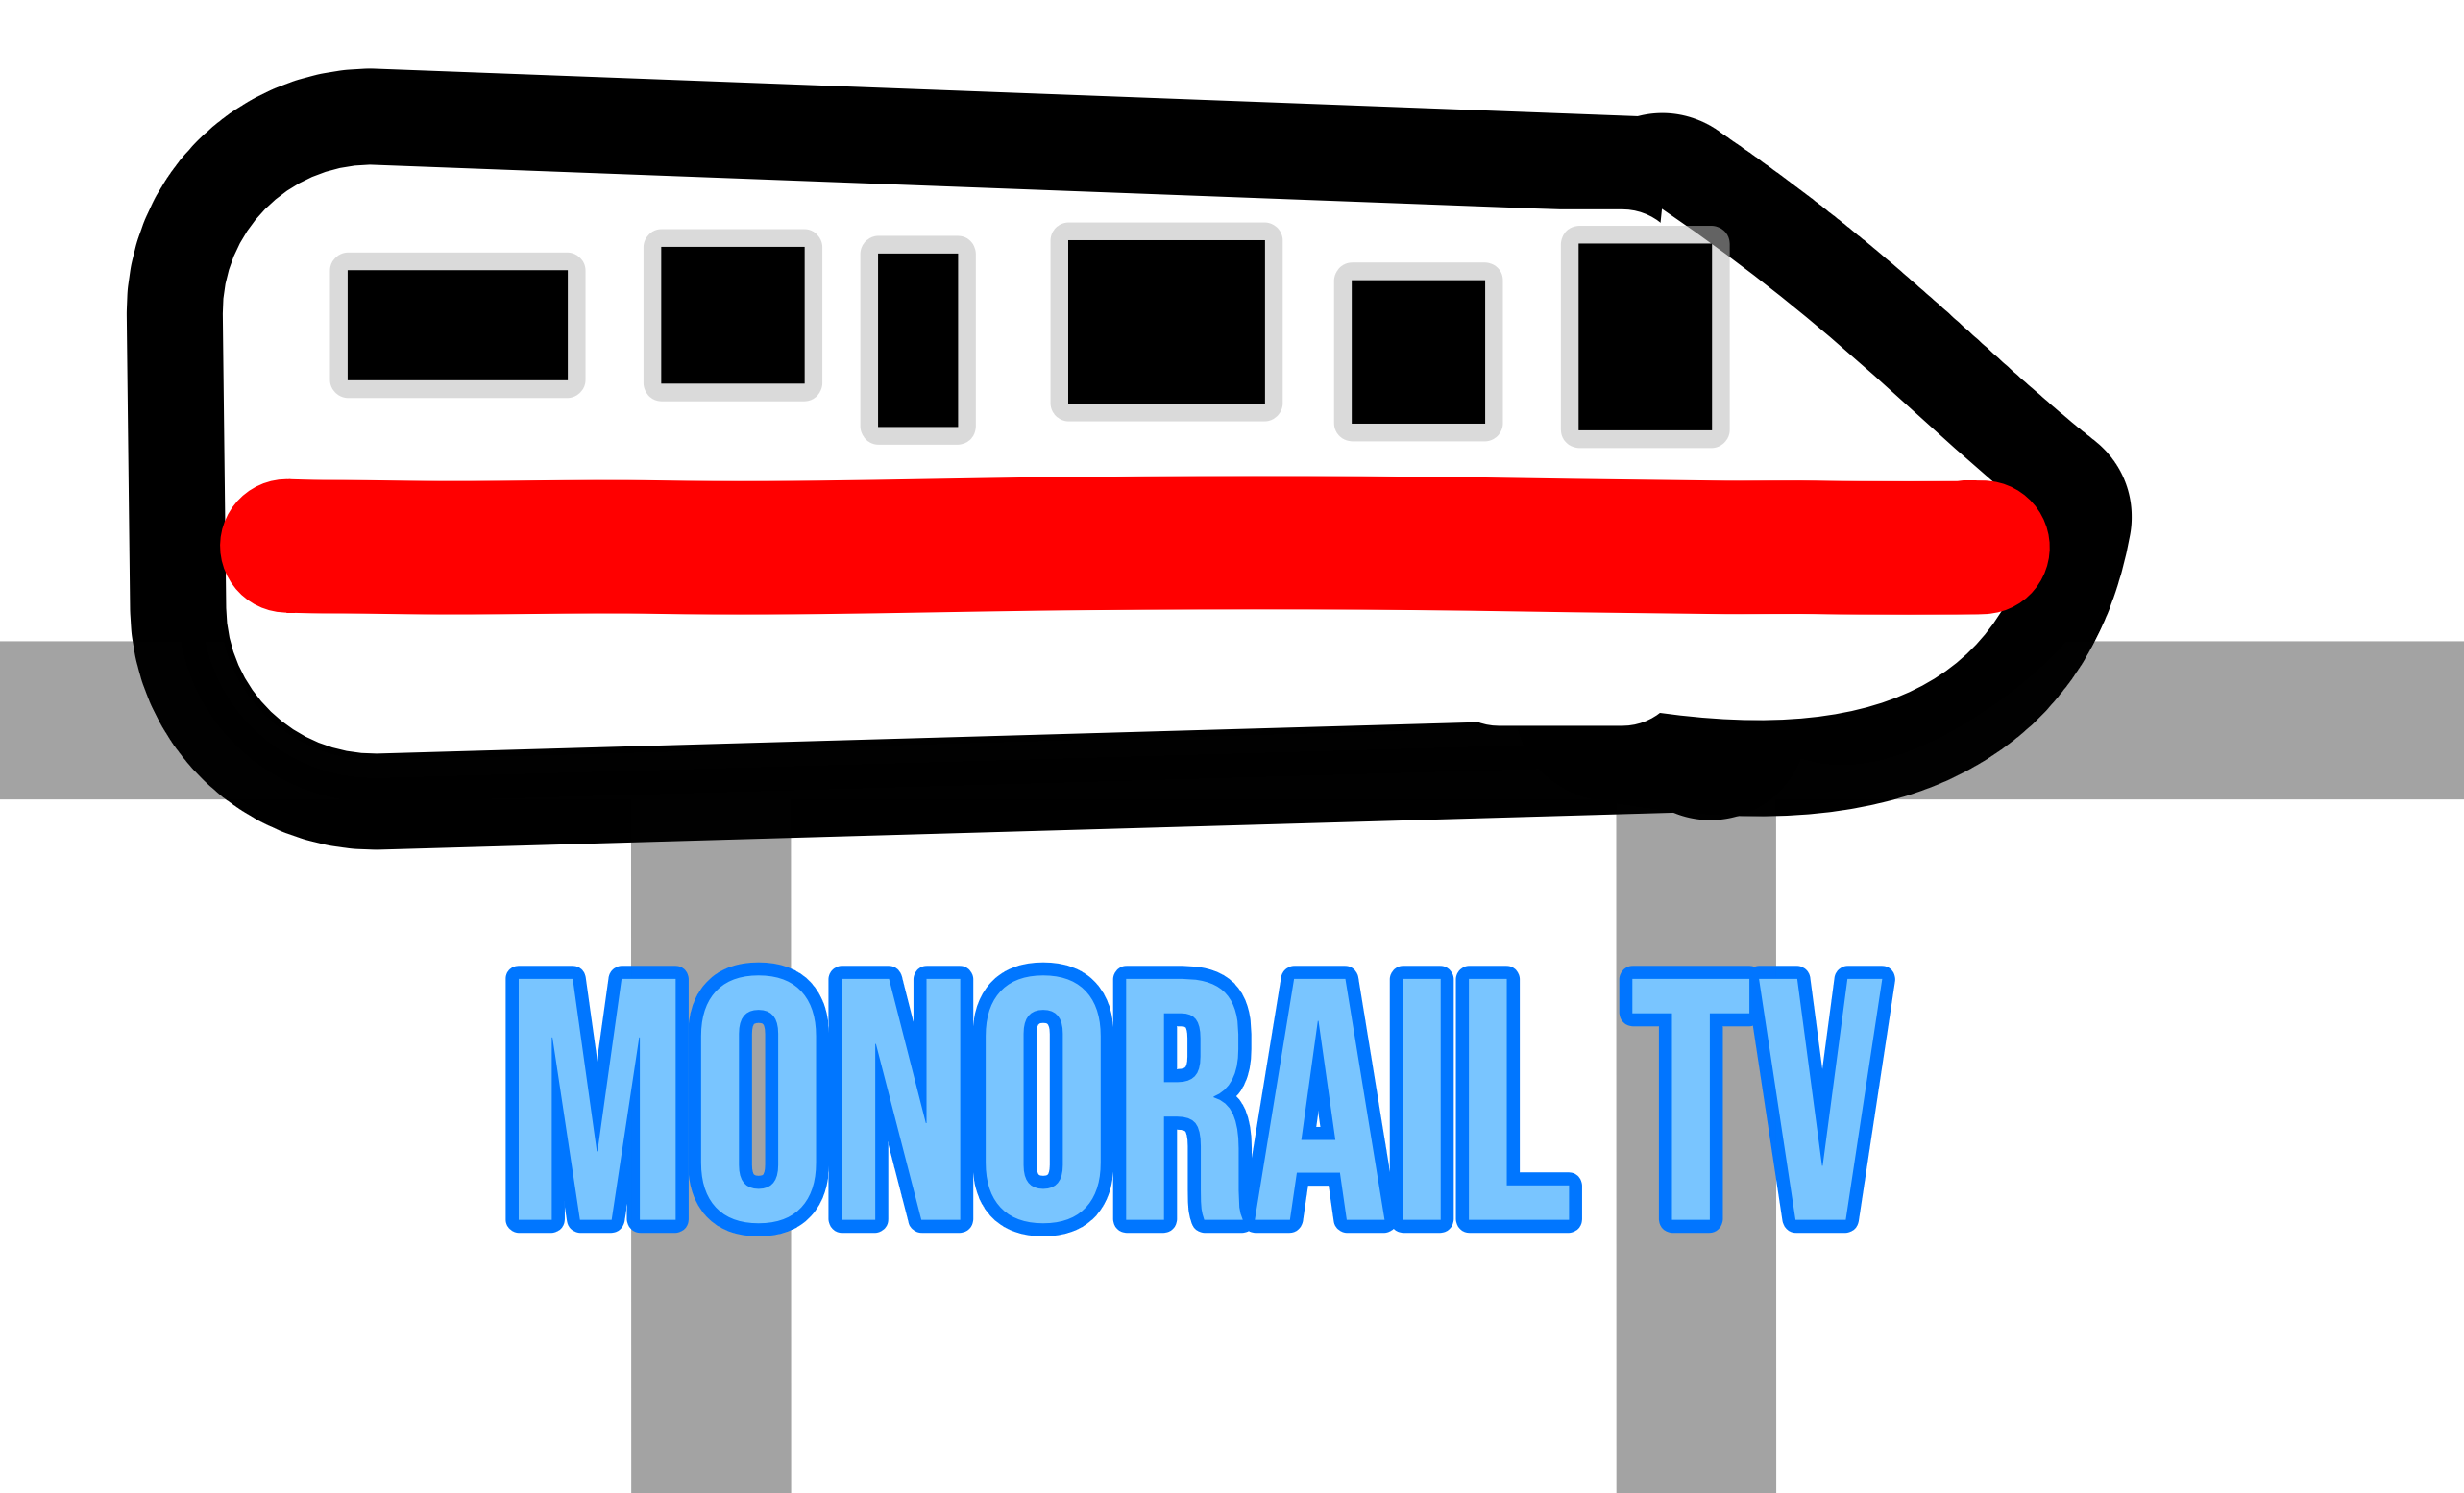 Monorail TV